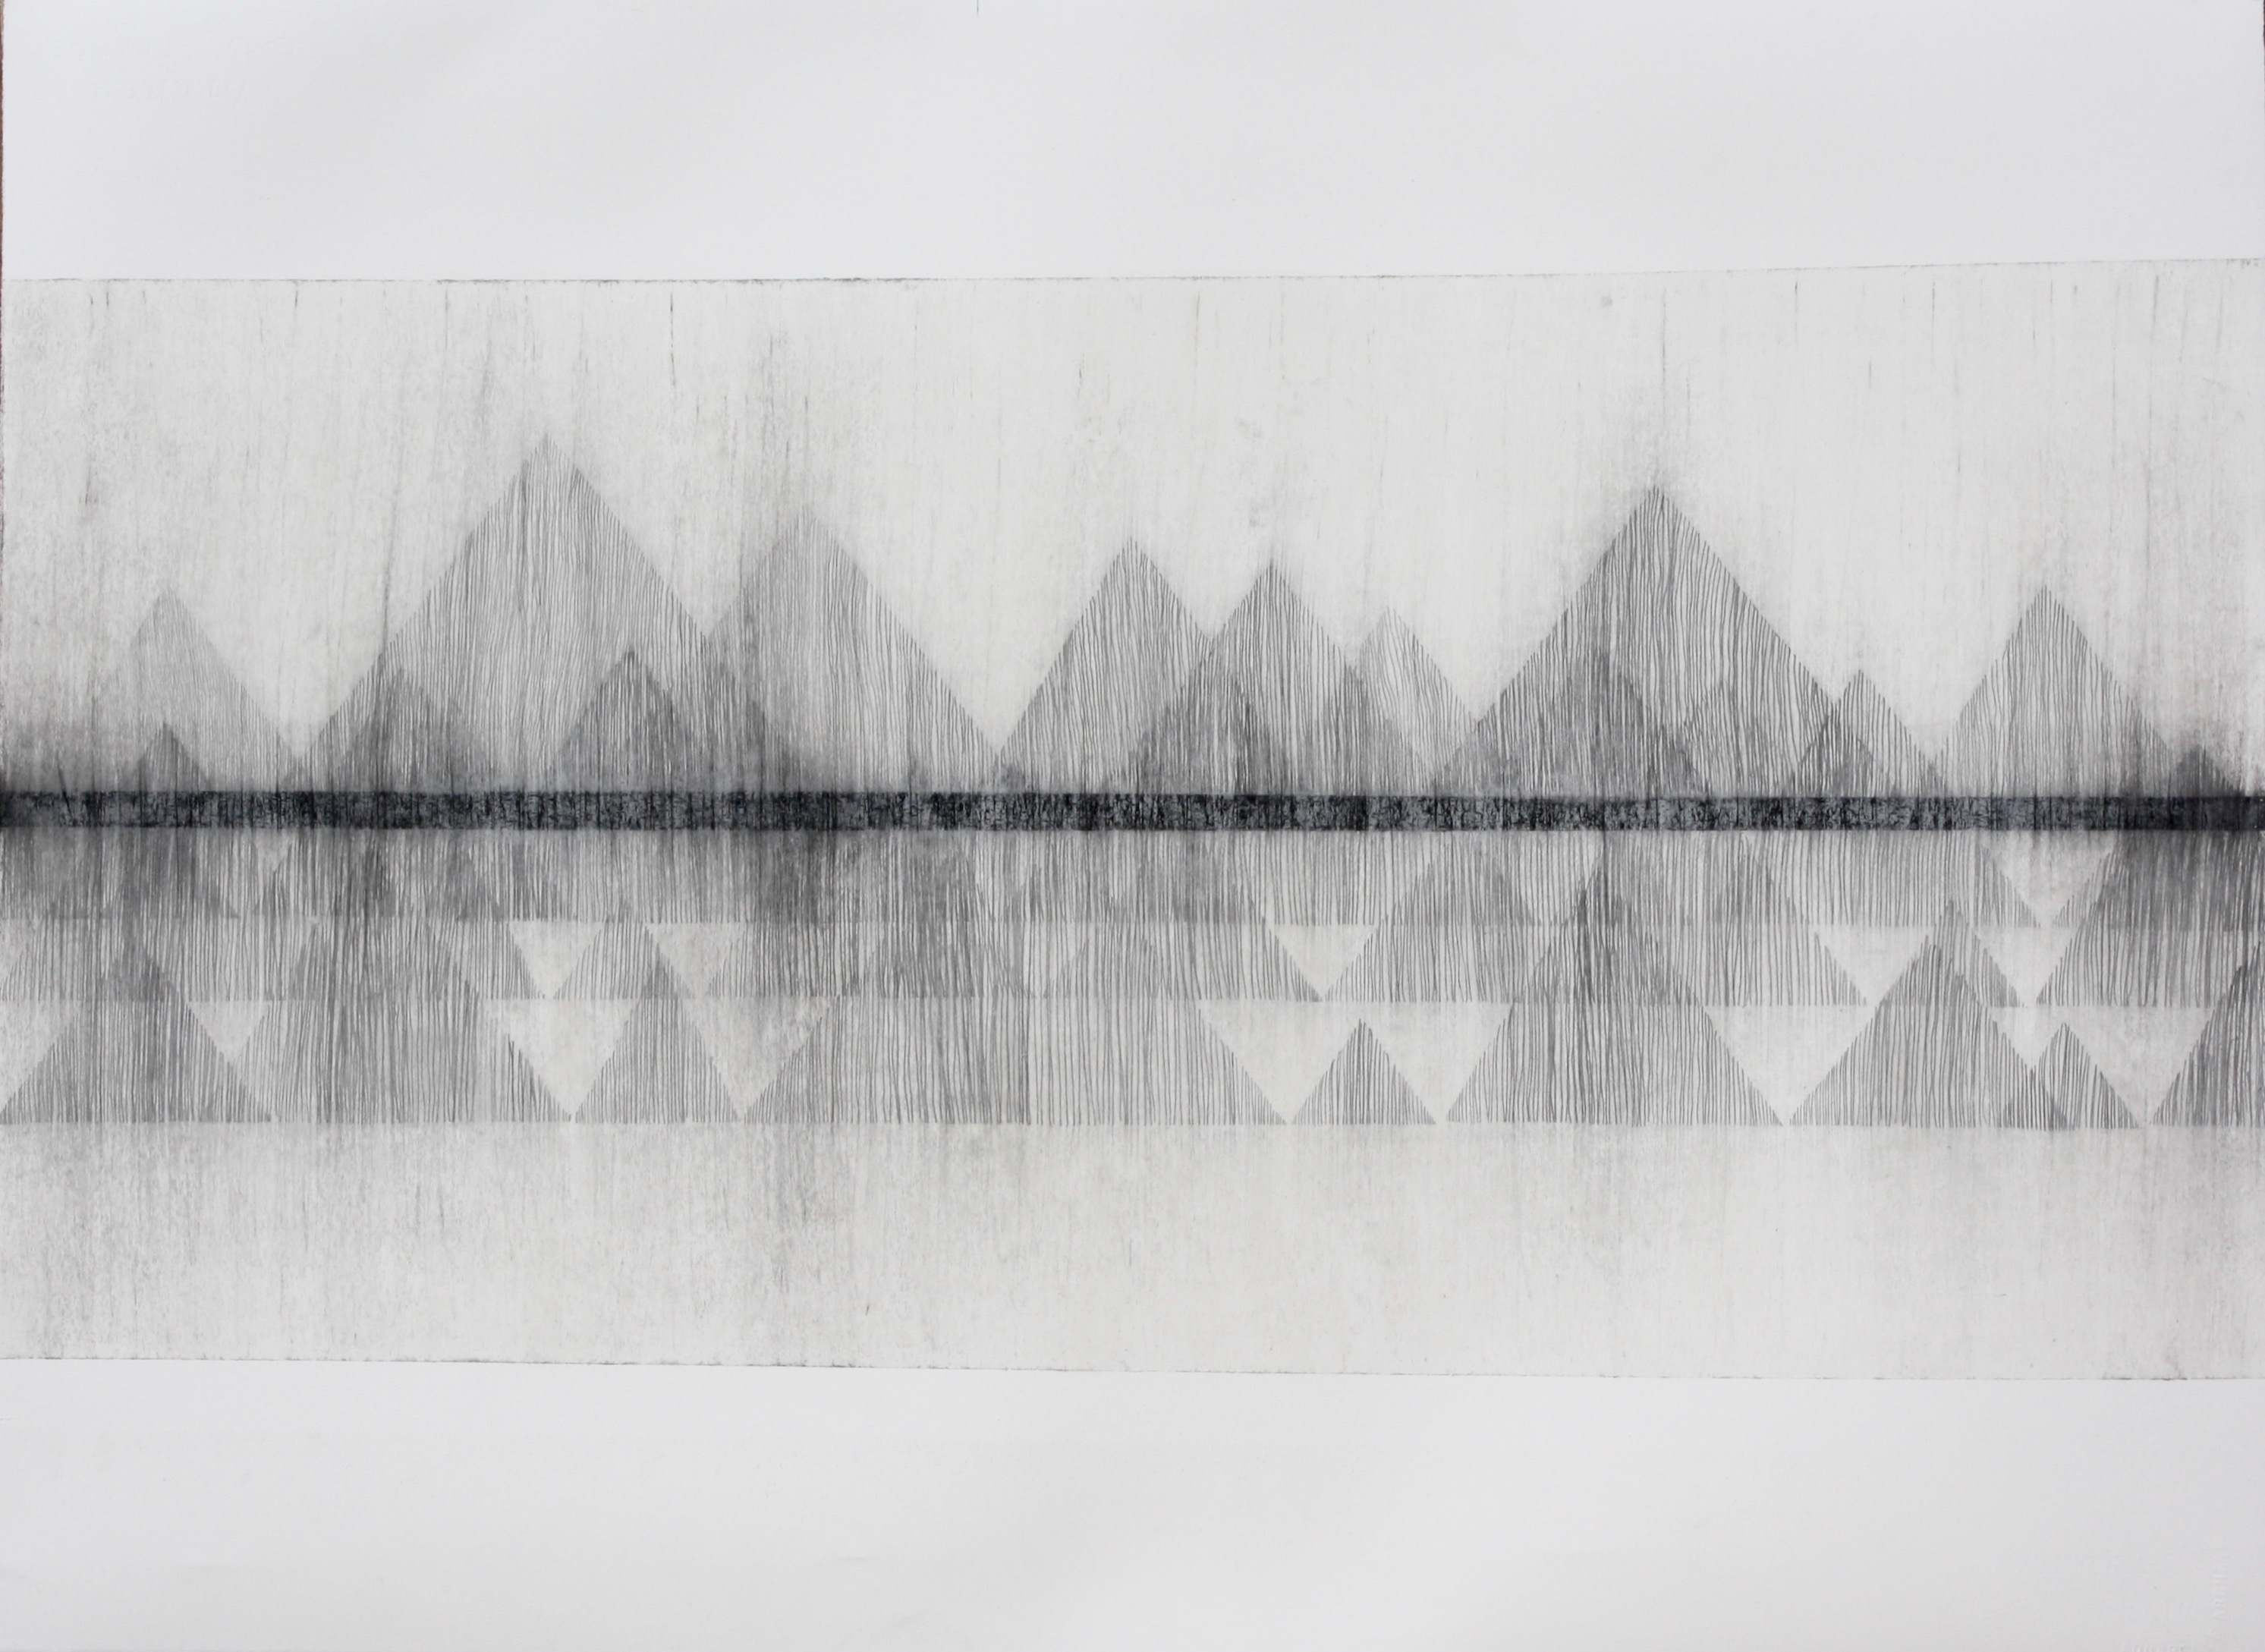 Robinson_Fiona Debussy La Cathdrale Engloutie/Sunken Cathedral #1. Graphite charcoal and mixed media 76 x 56cms